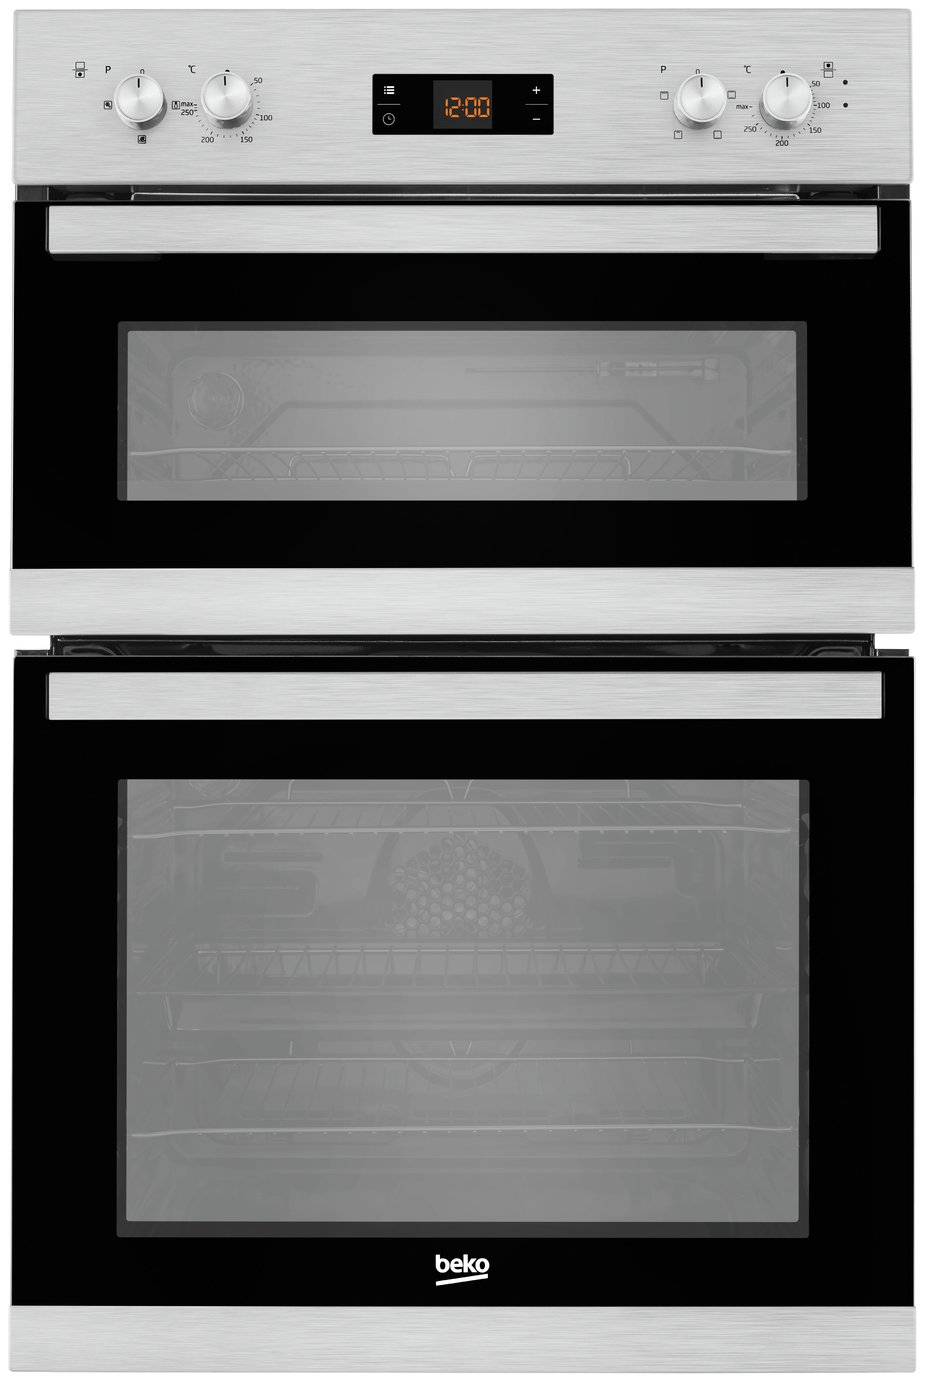 Image of Beko BADF22300X Double Built-In Oven - Steel Installation